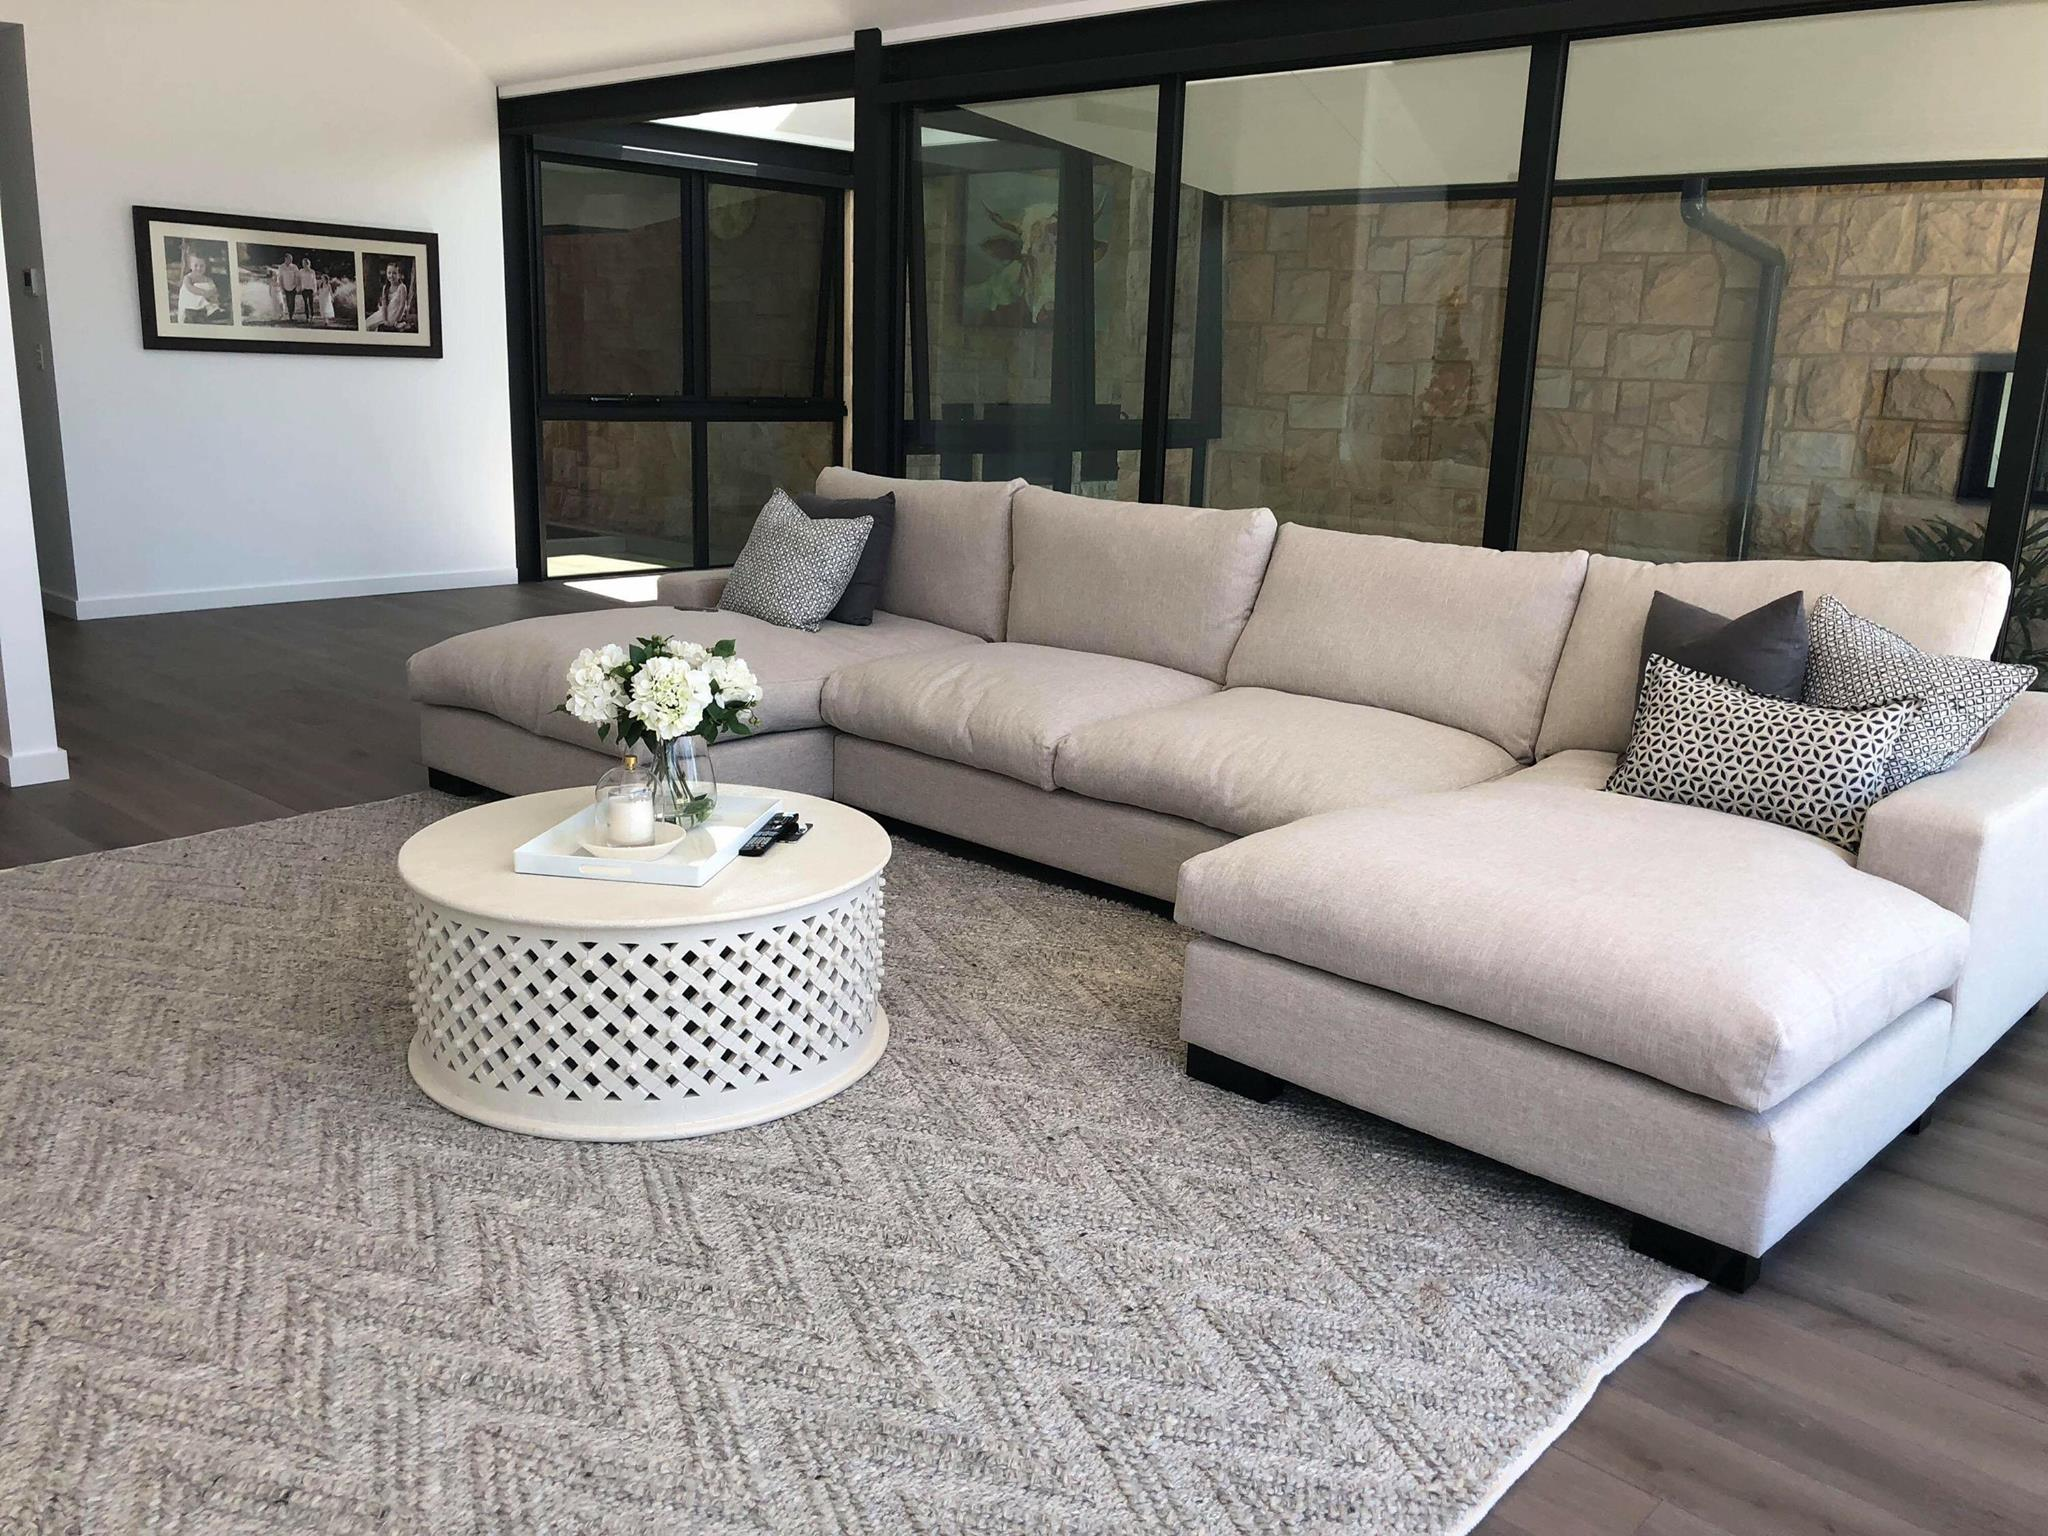 Lounge Sofa Sydney Quality Fabric Lounge Known For Lounges Sydney Sofas